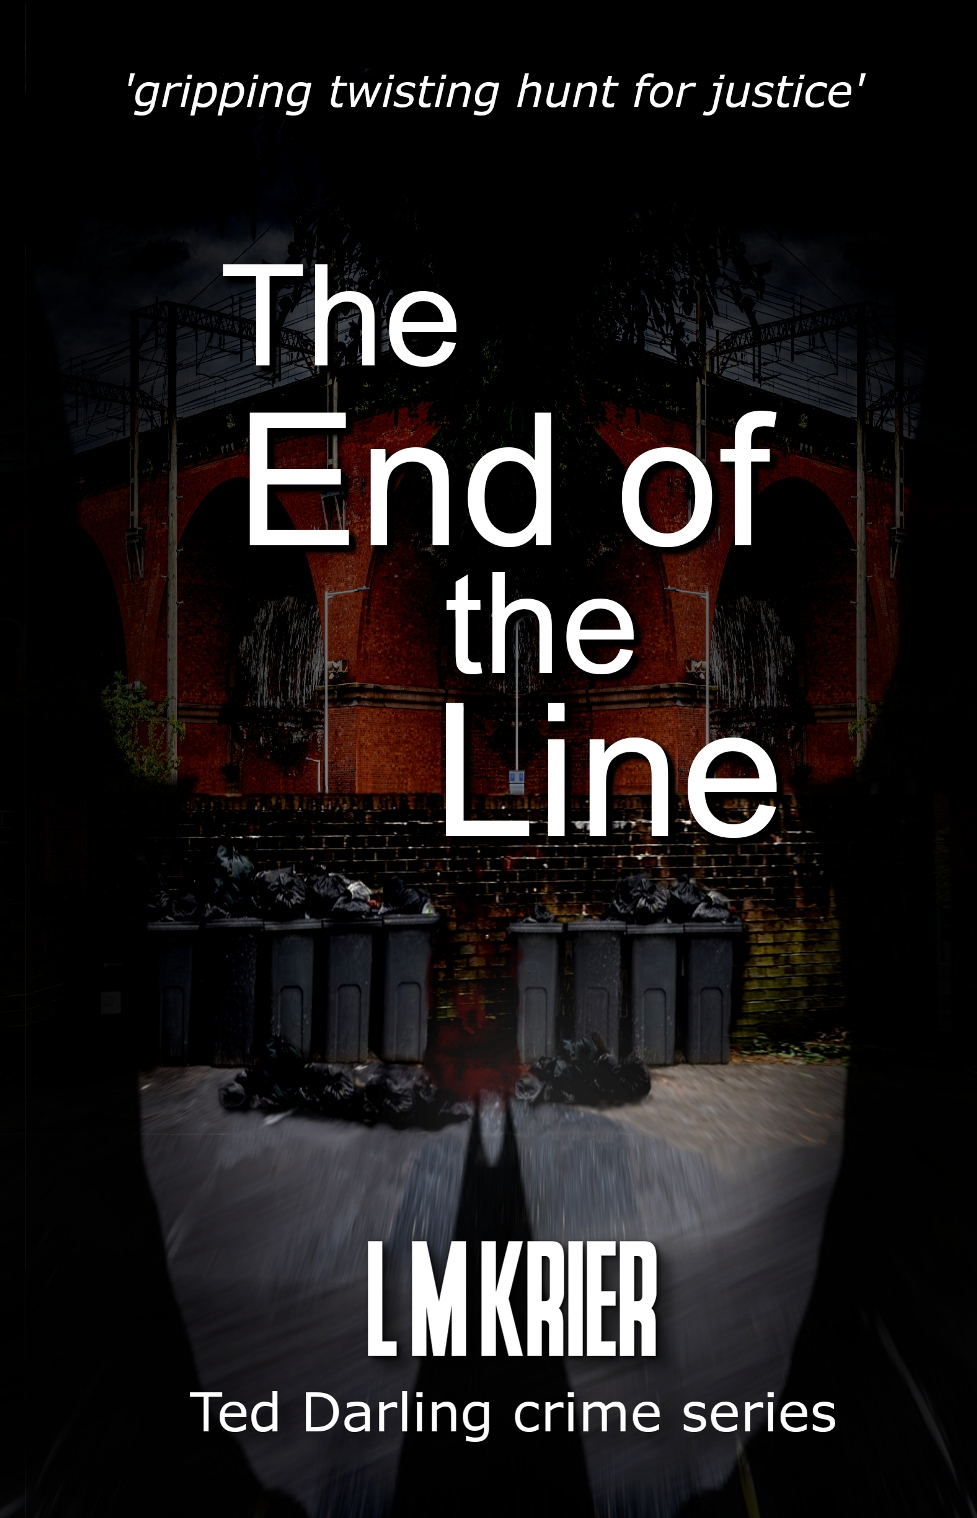 210211_The End of the Line cover K1